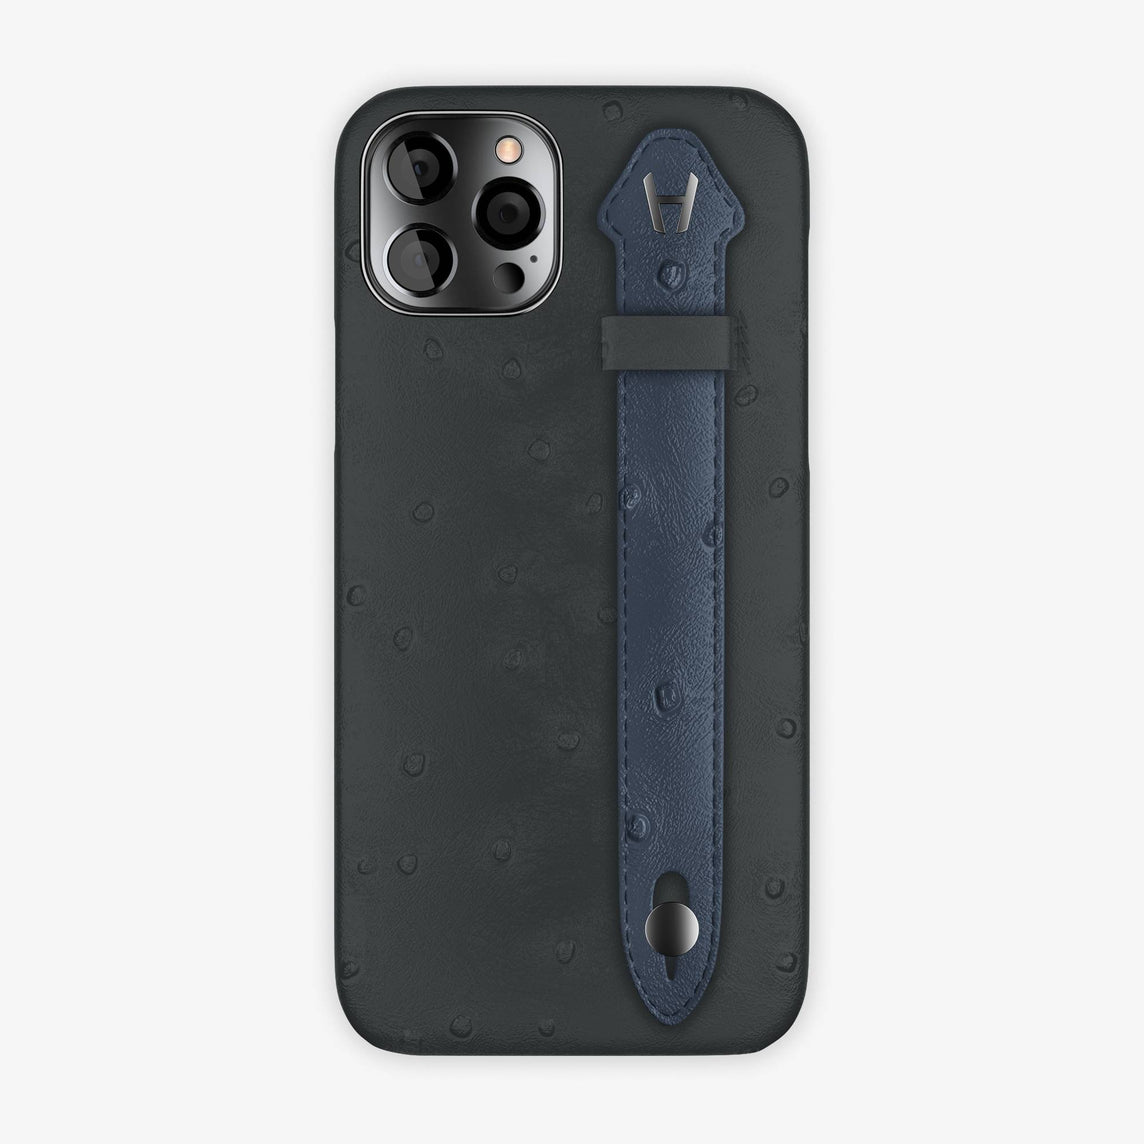 Ostrich Side Finger Case iPhone 12 Pro | Anthracite/Navy Blue - Black